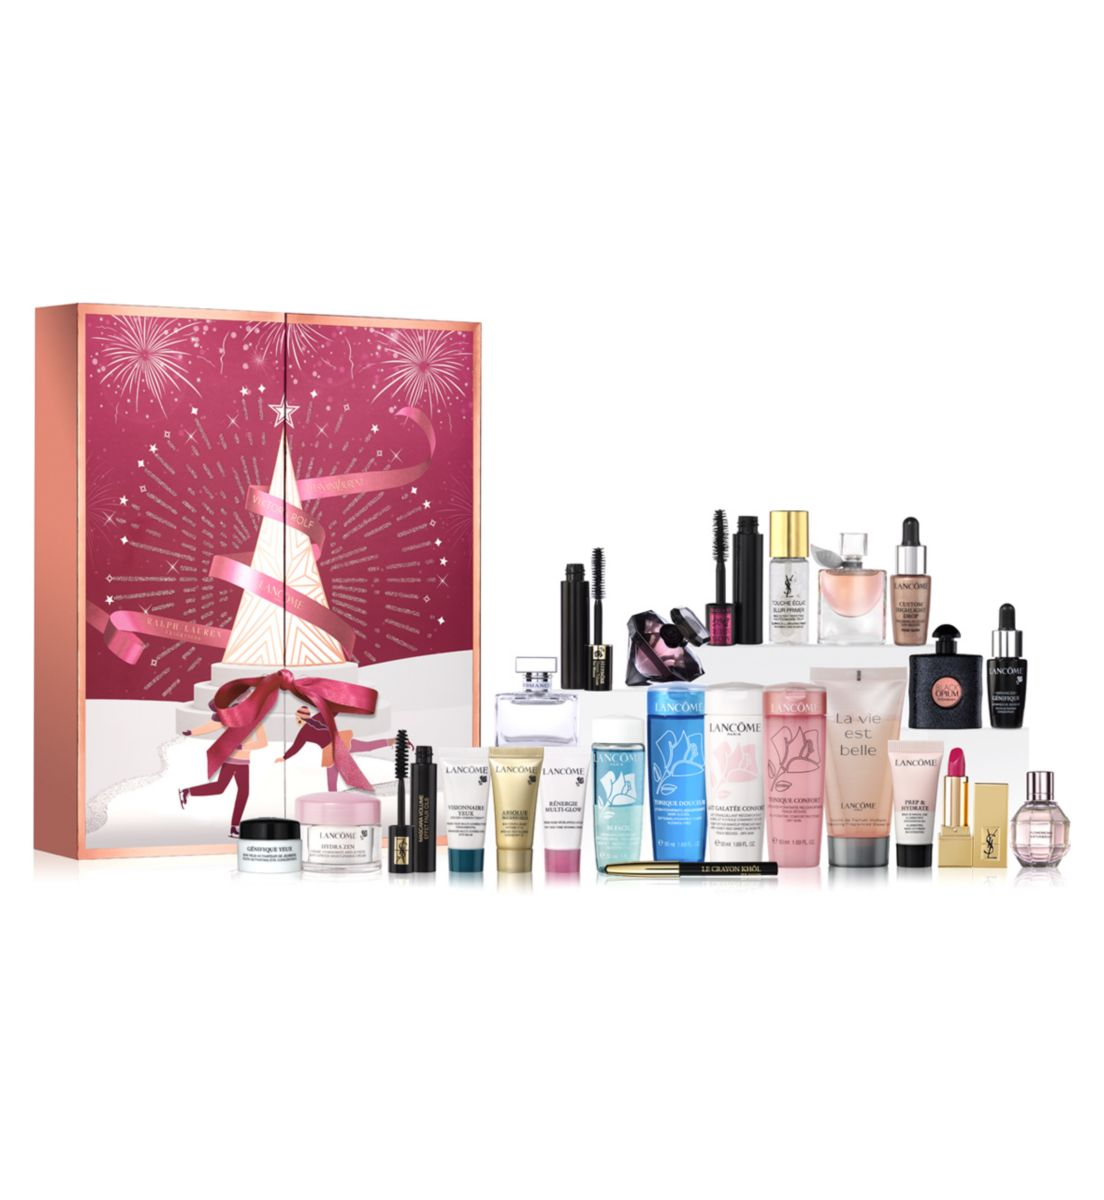 63 Best Beauty Advent Calendars For Christmas 2020 Hot Beauty Health Beauty Advent Calendar Best Beauty Advent Calendar Hot Beauty